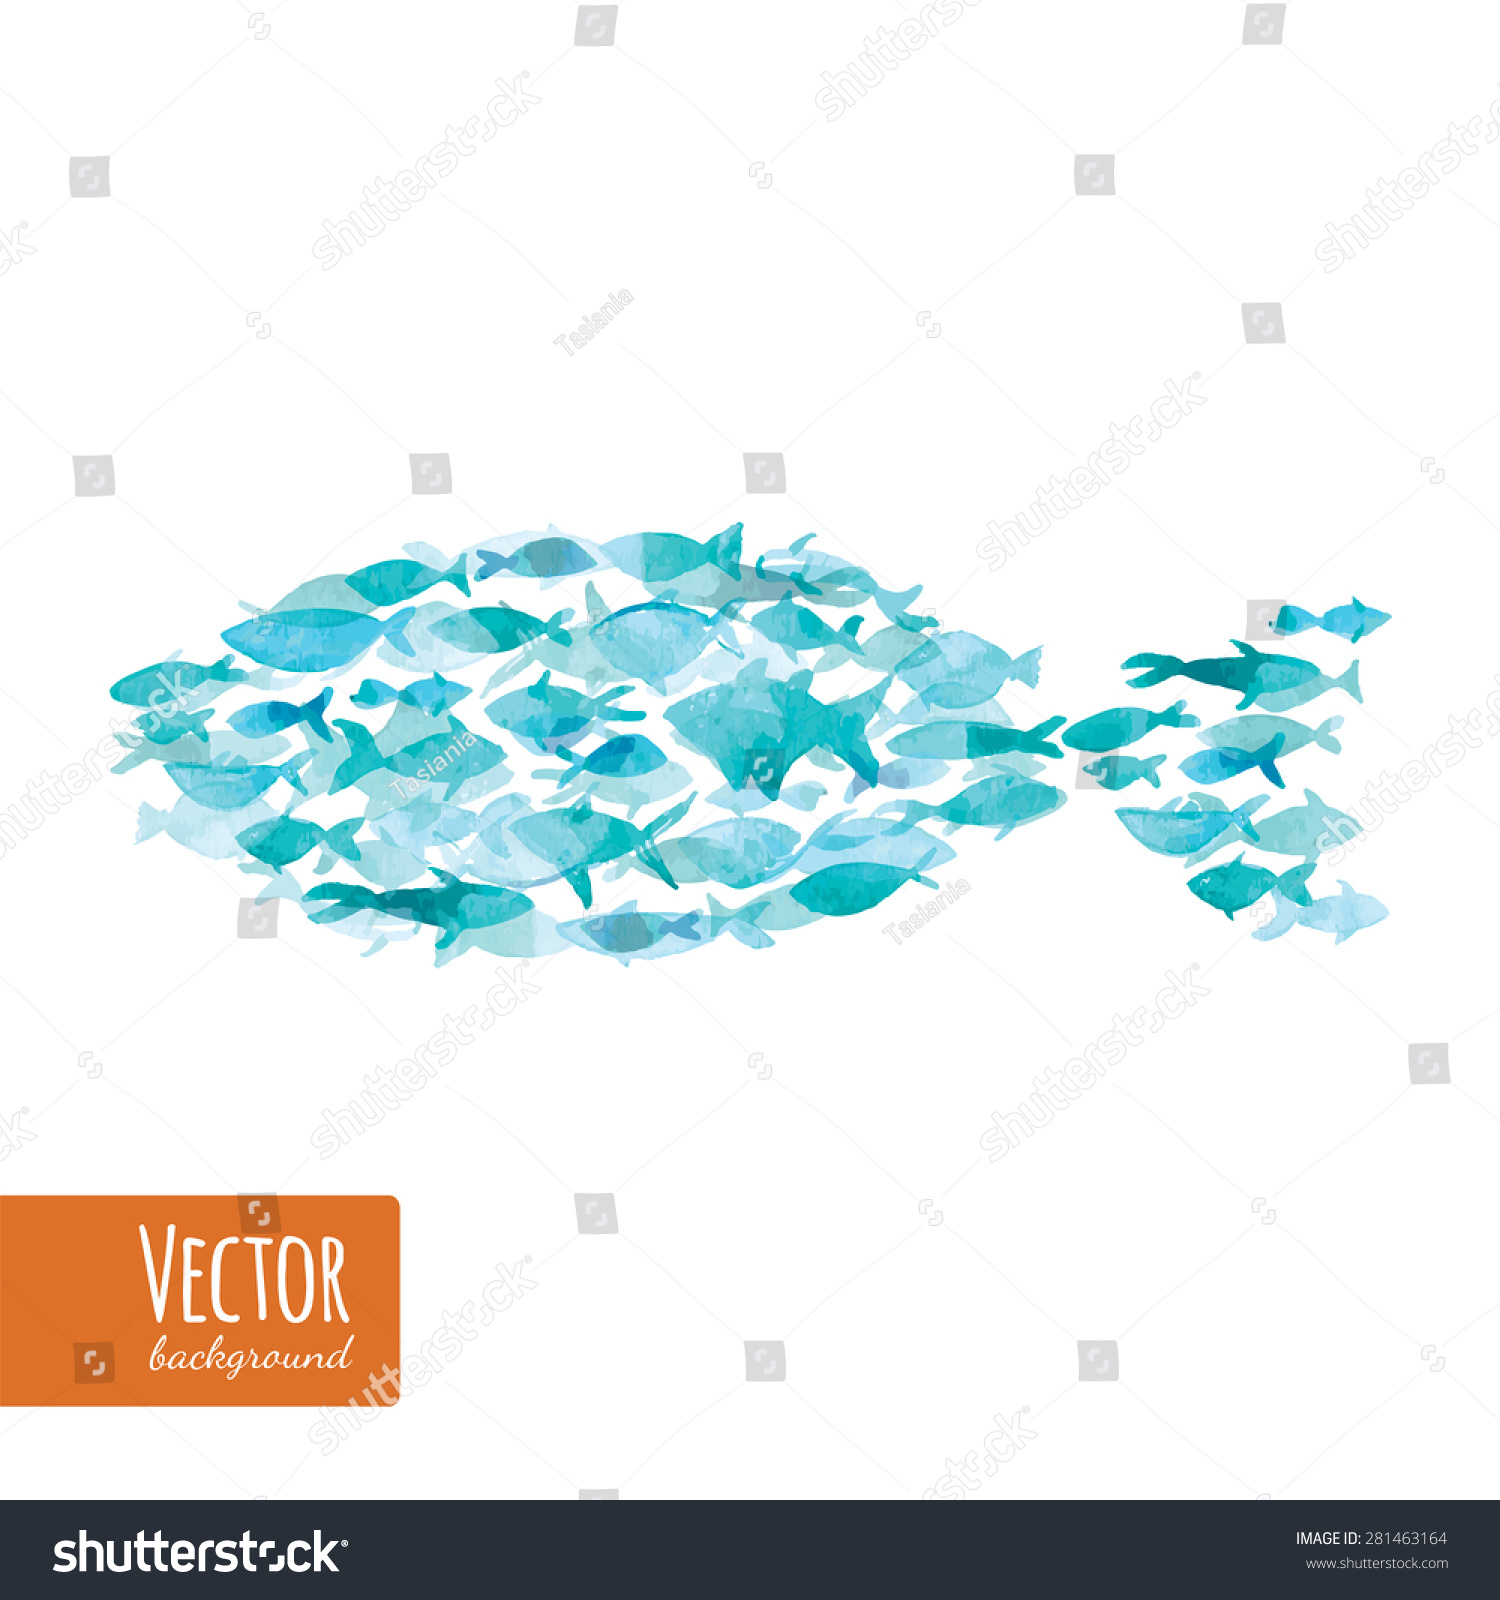 Many sea blue ocean fishes together stock vector 281463164 many sea blue ocean fishes together as symbol of teamwork vector watercolor fish on light biocorpaavc Choice Image